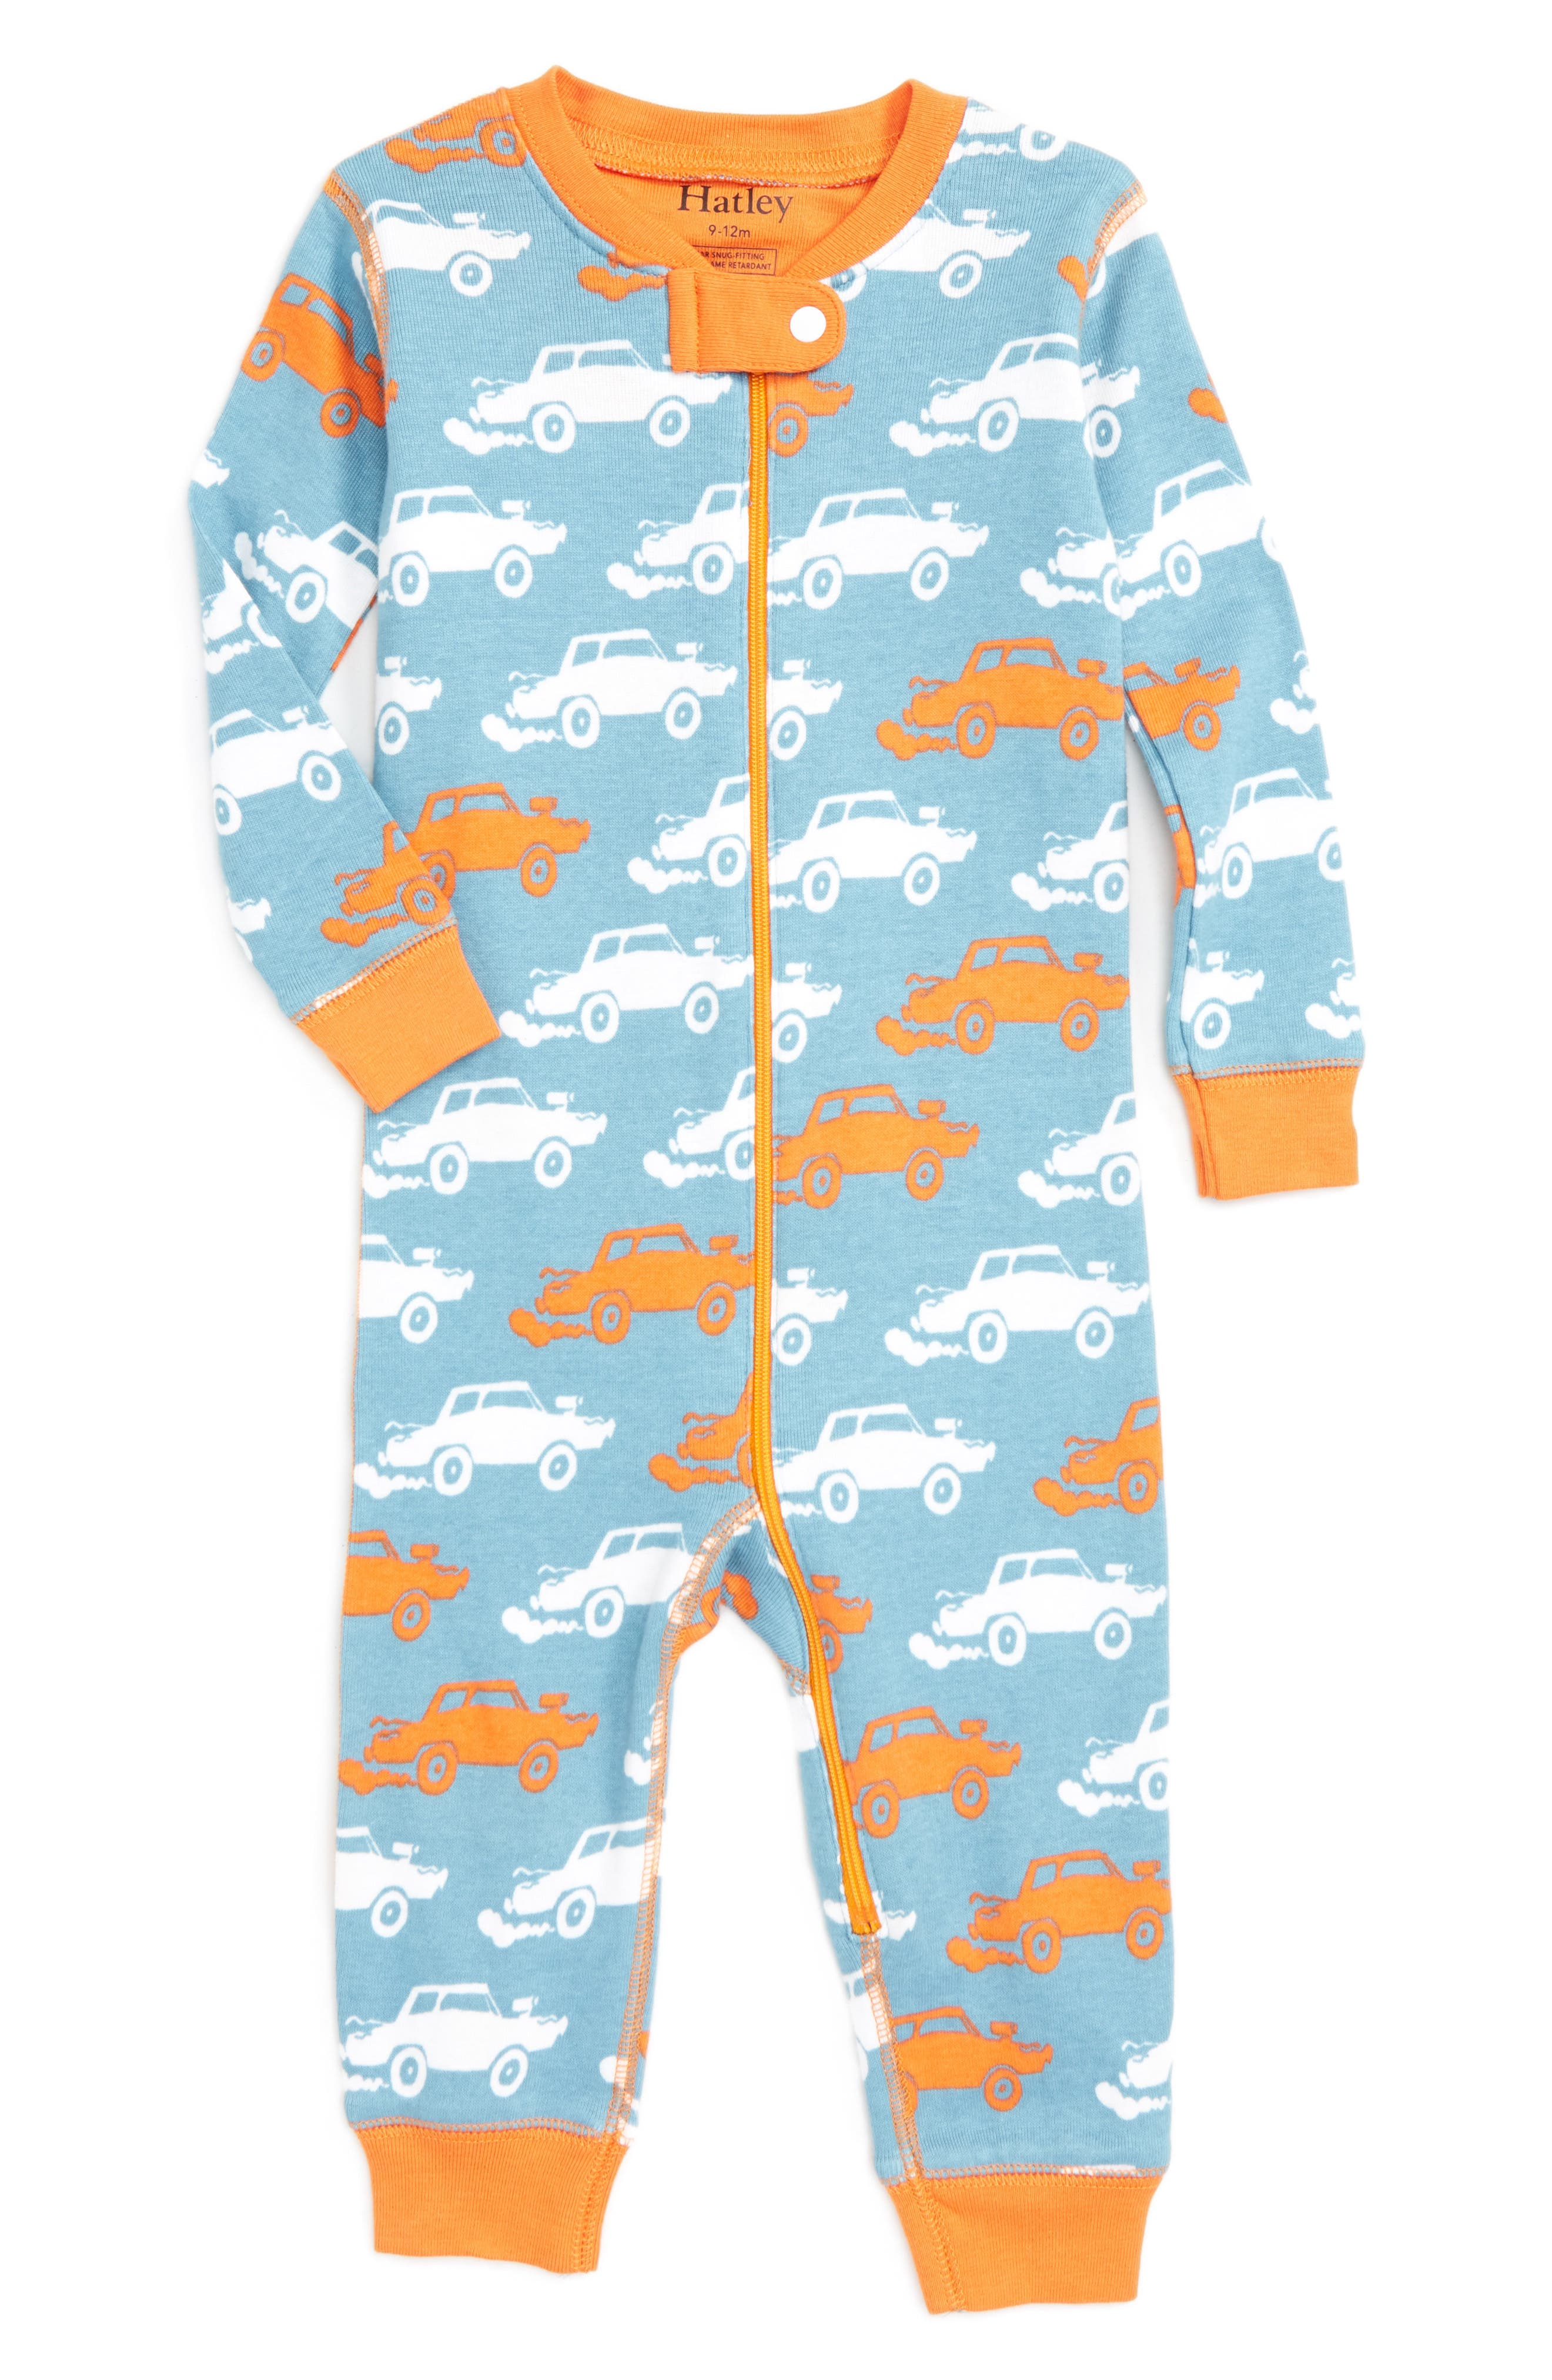 Hatley Print Fitted One-Piece Organic Cotton Pajamas (Baby)